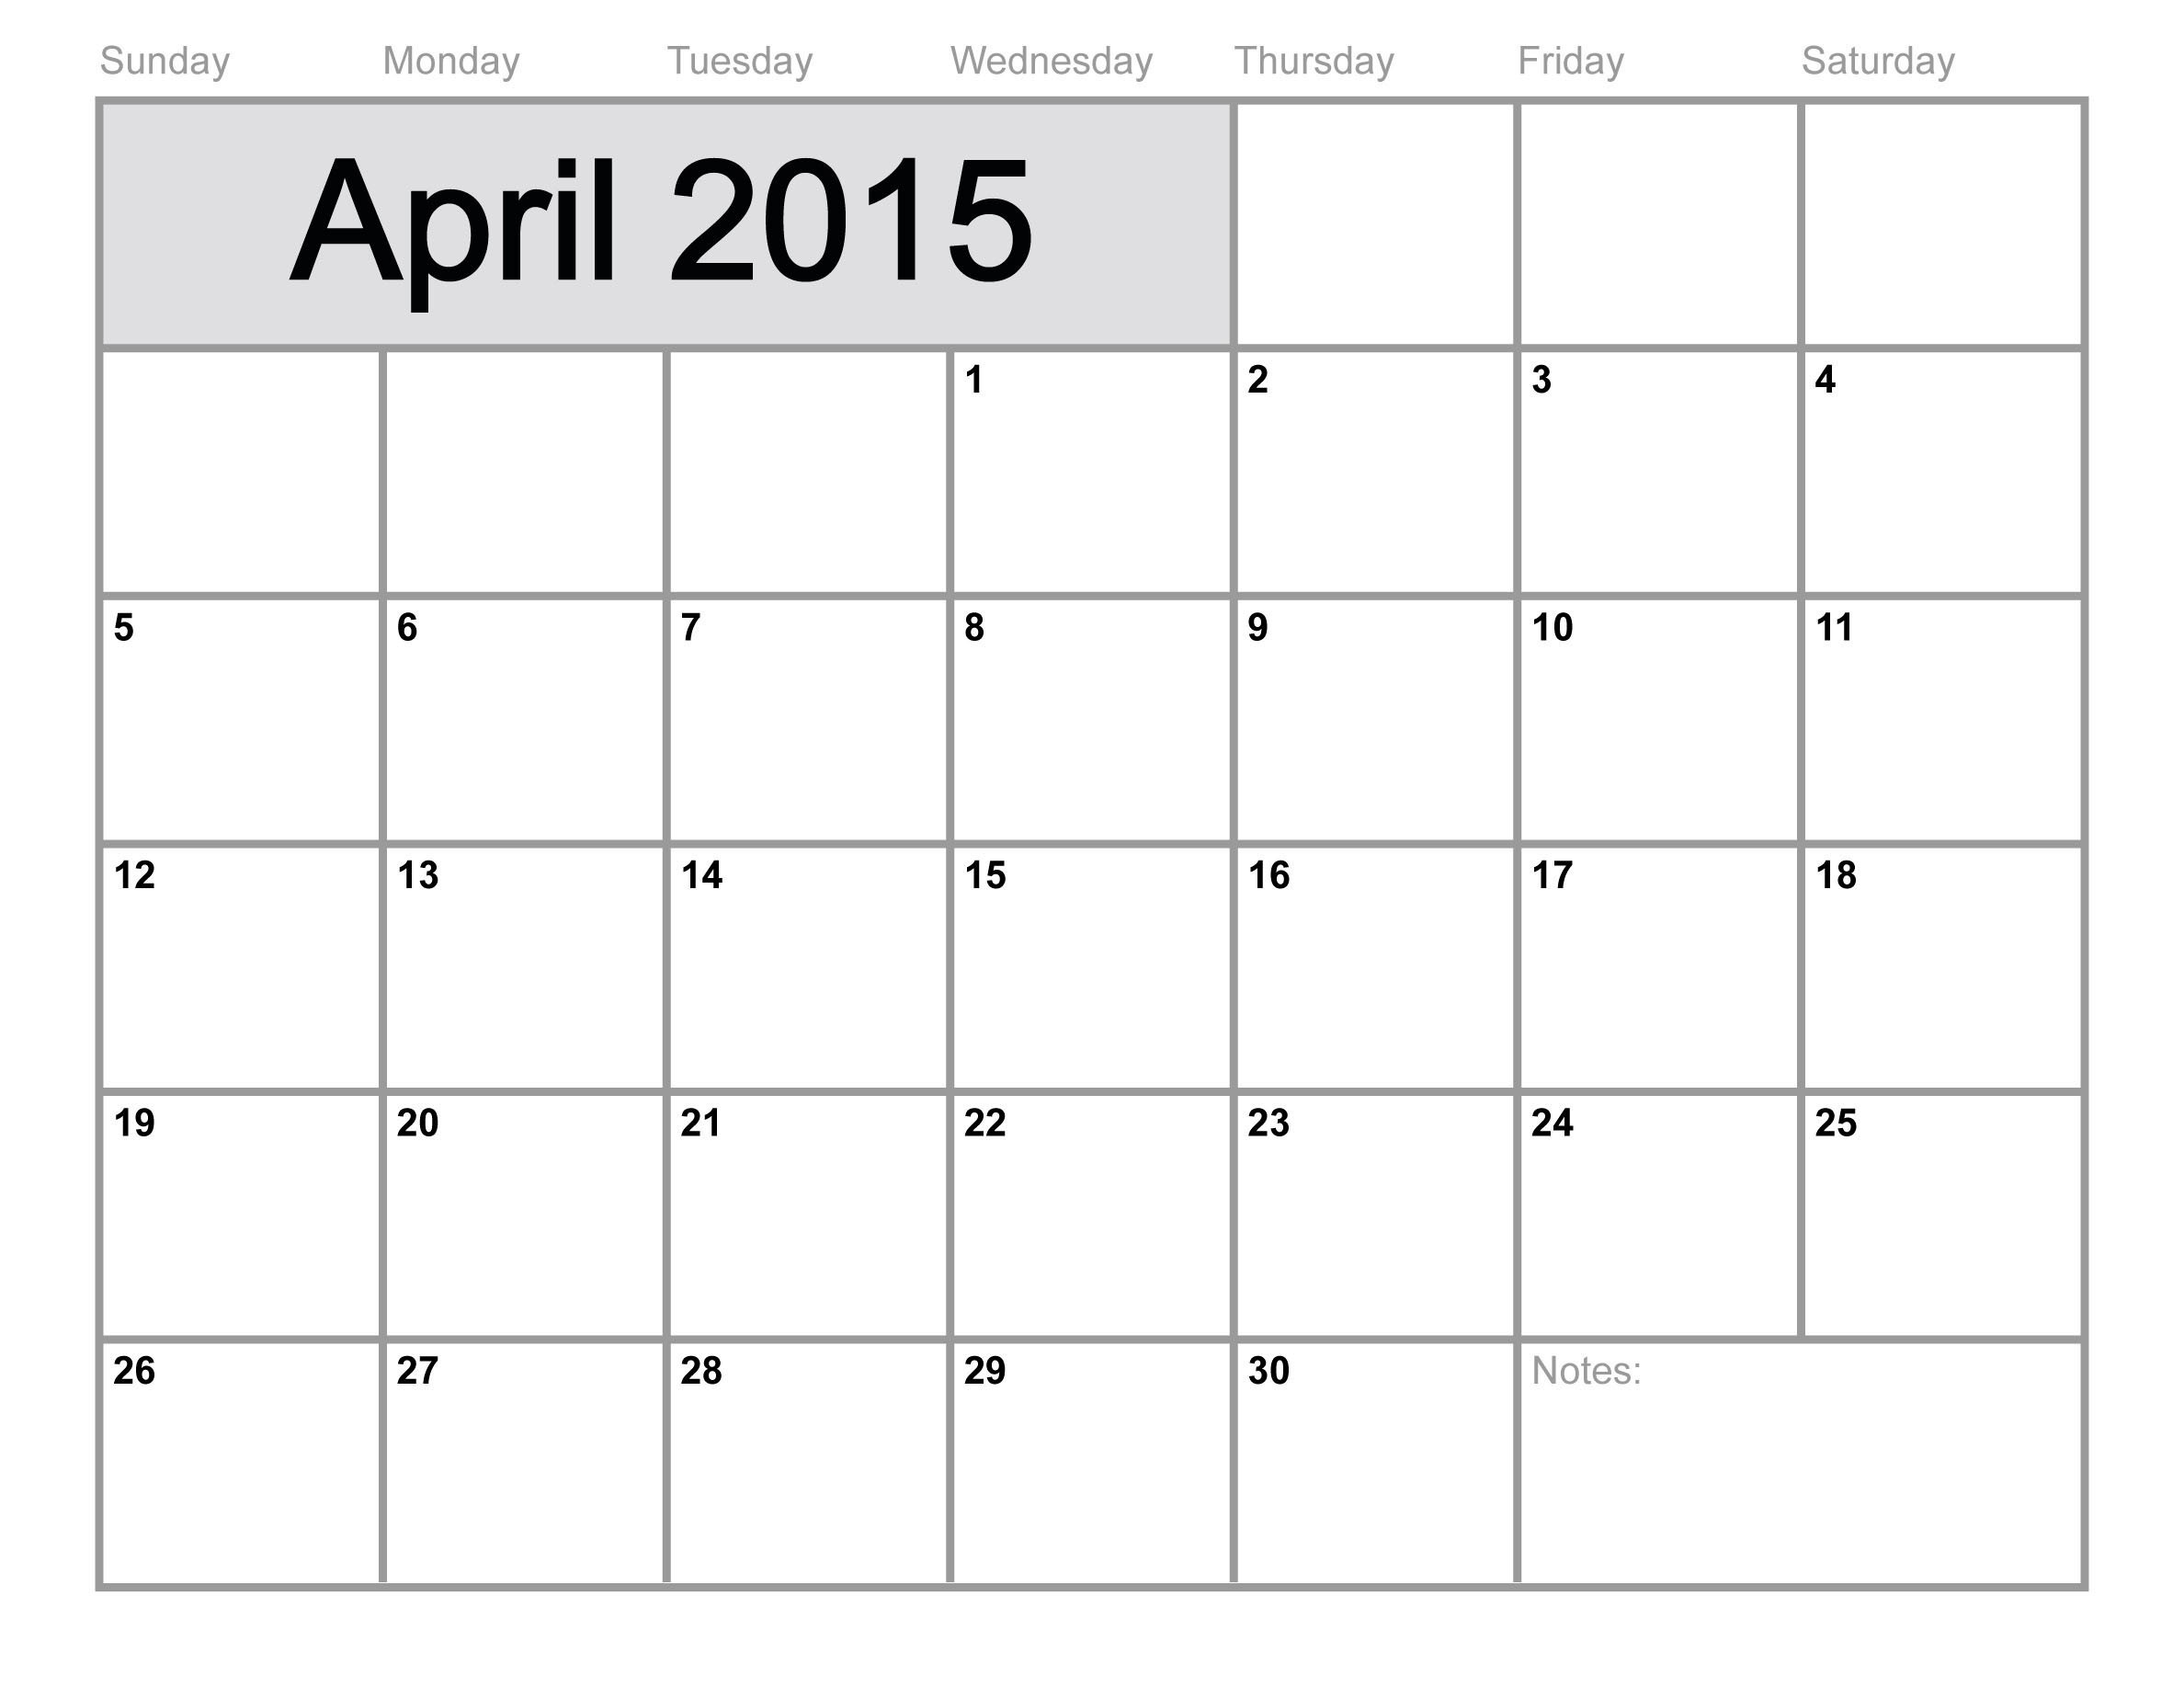 Labeled 2014 april calendar 2015 april calendar 2015 april calendar blank 2015 april calendar canada 2015 april calendar doc 2015 april calendar excel